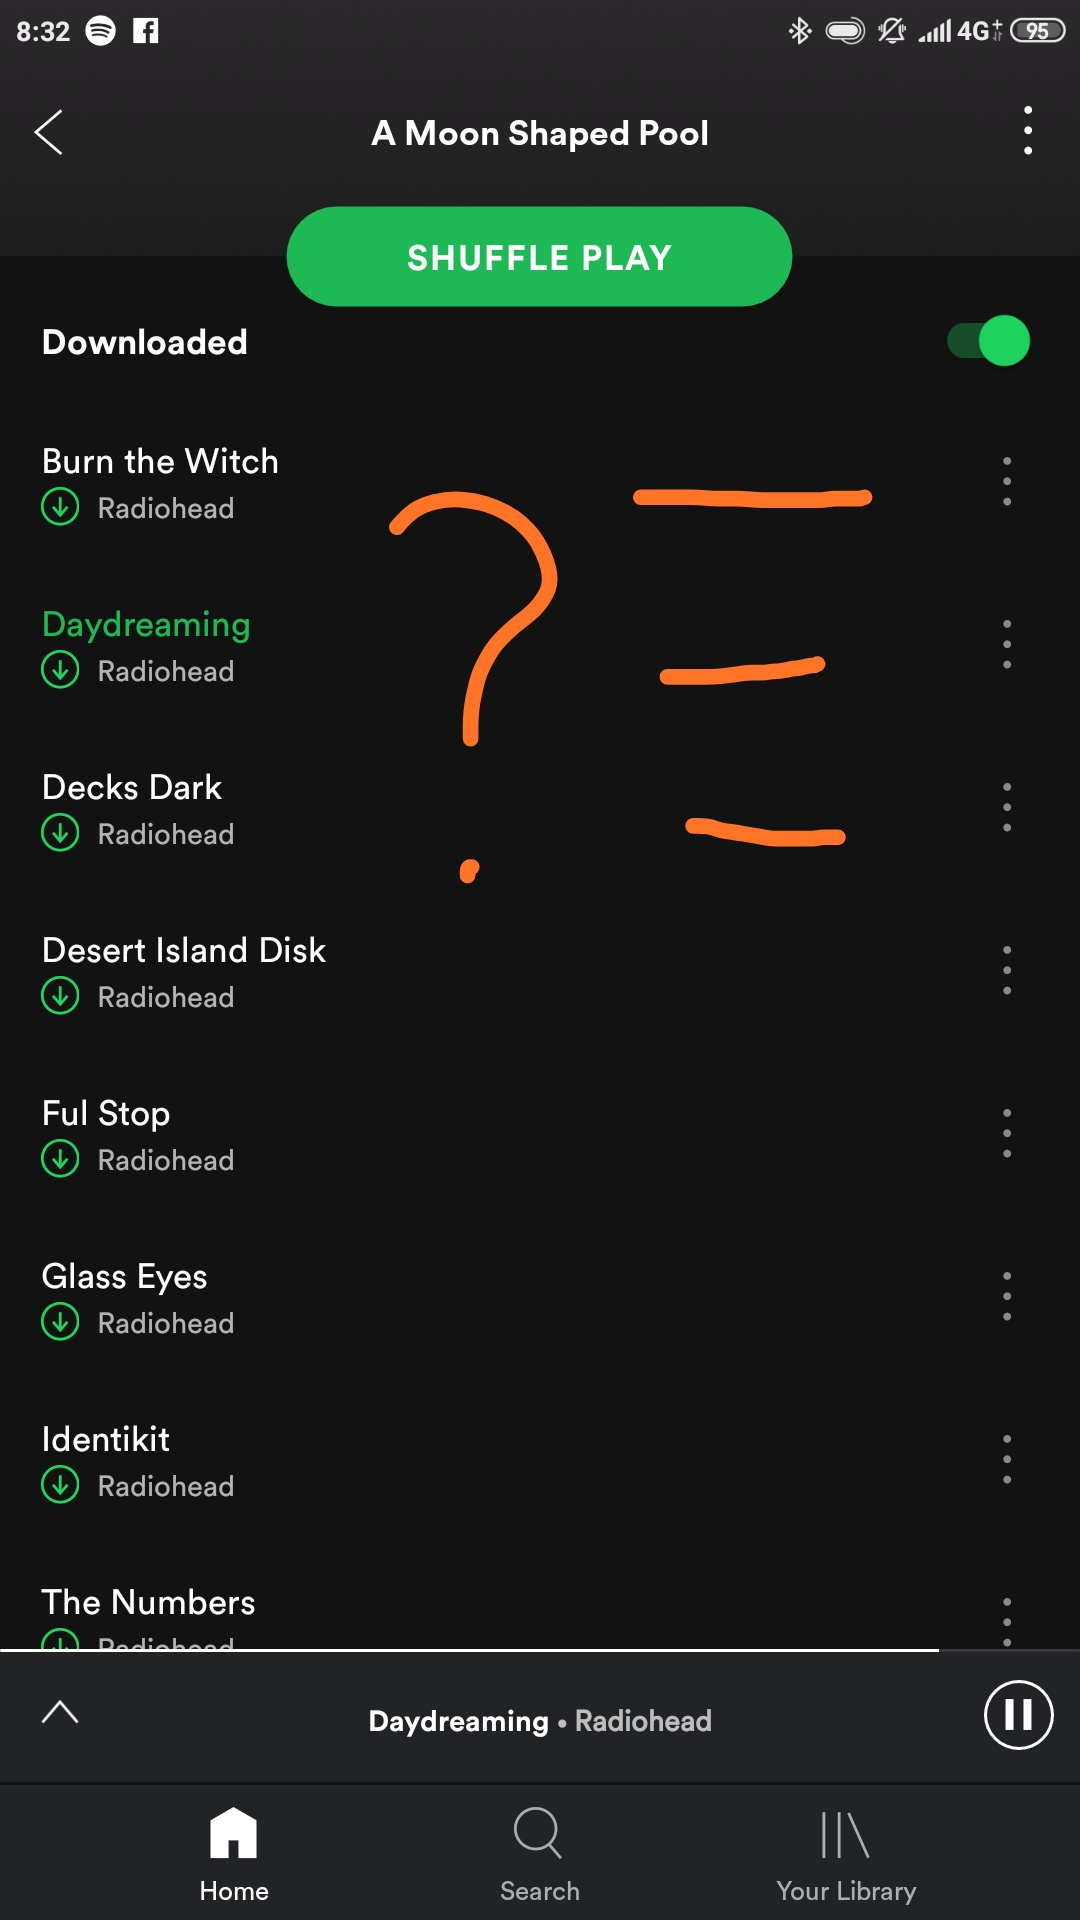 Mobile][Playlists] Timestamps next to song names   The Spotify ...